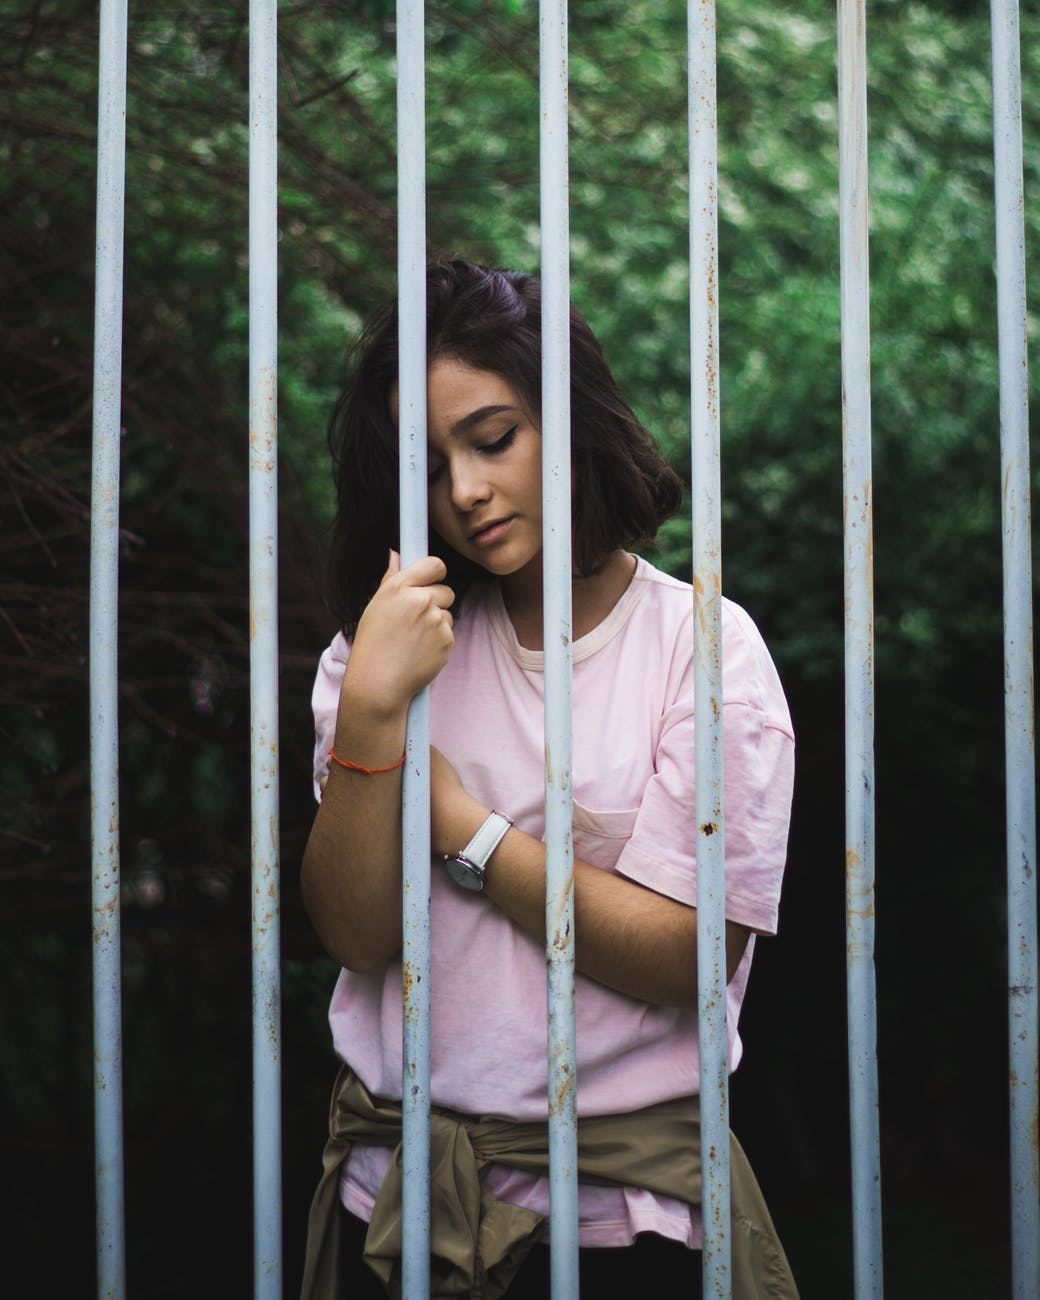 woman wearing pink crew neck t shirt standing and leaning behind white bars